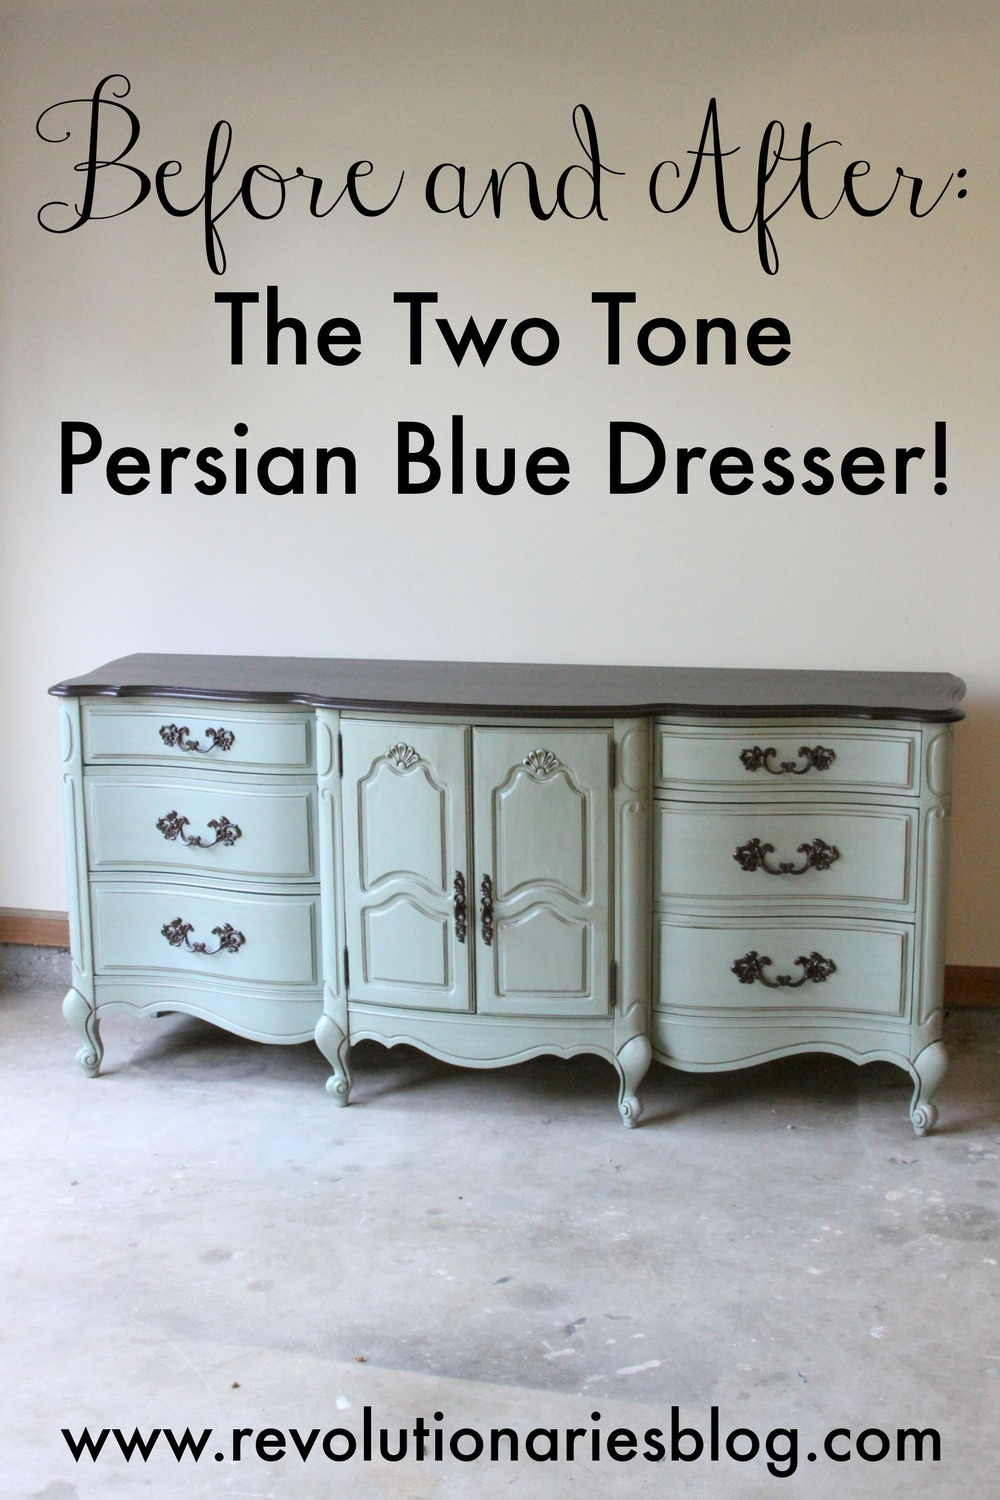 before-and-after-the-two-tone-persian-blue-dresser-1.jpg